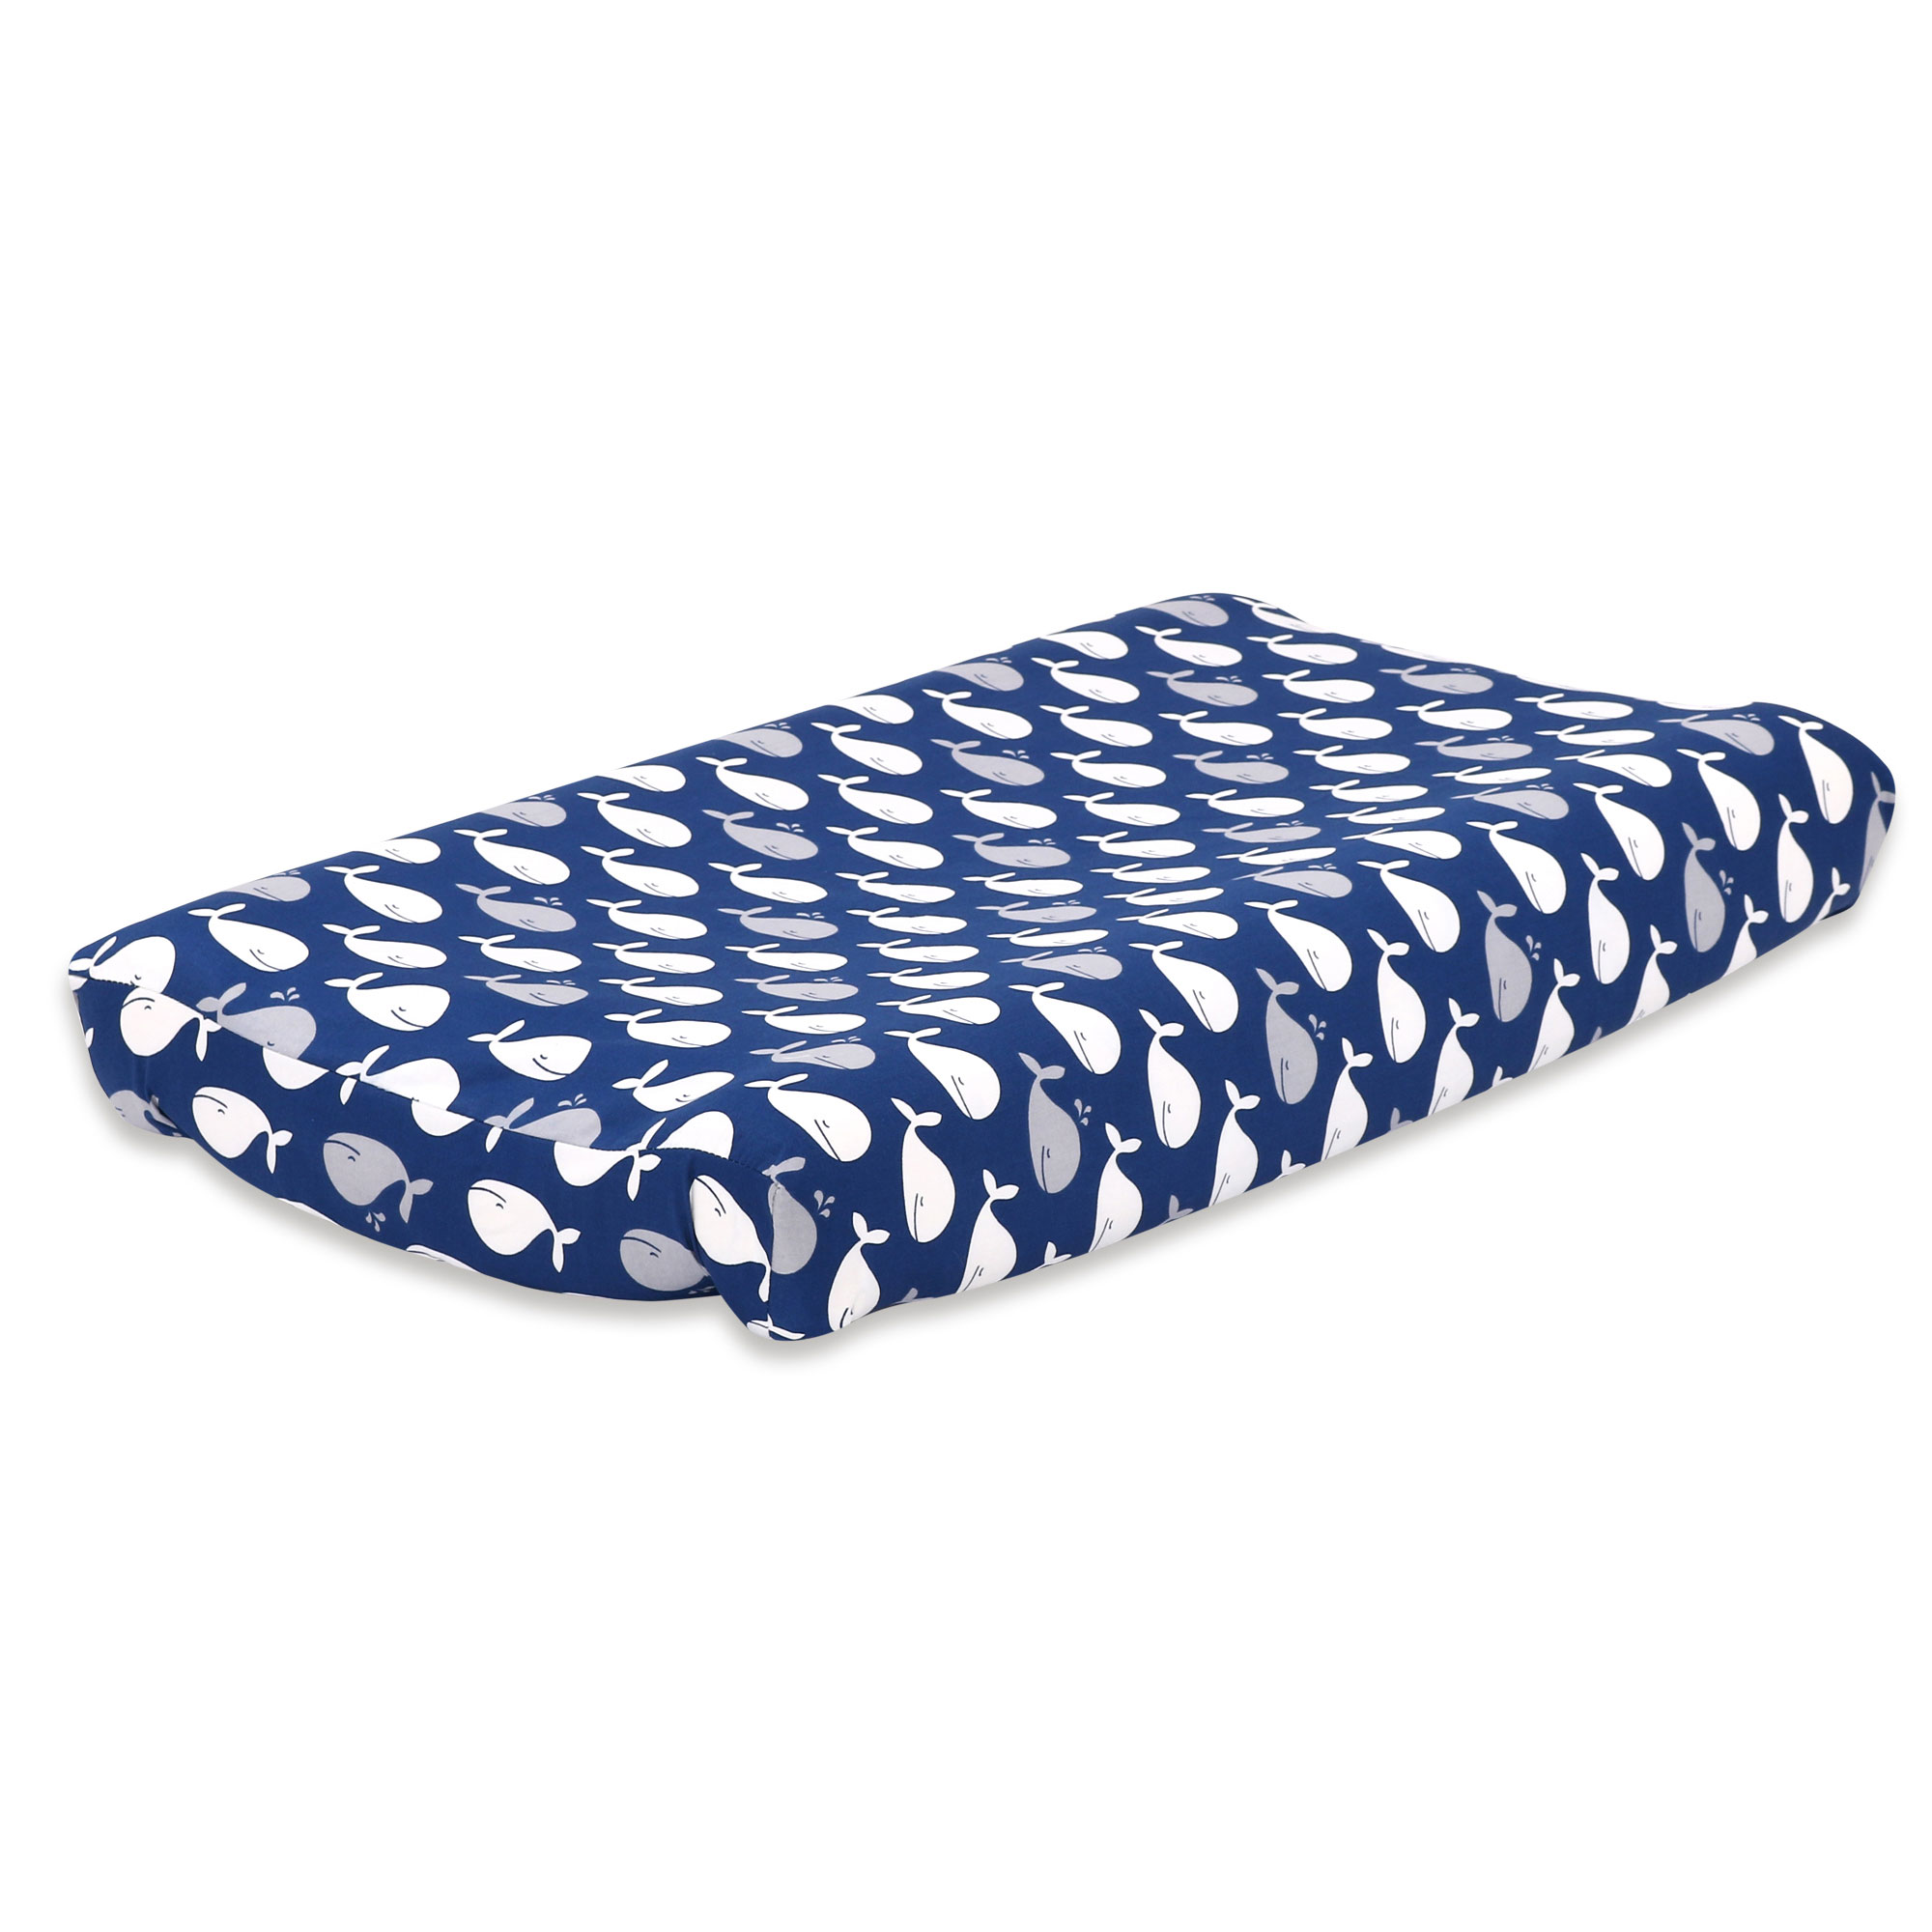 The Peanut Shell Baby Contoured Changing Pad Cover - Navy Blue Nautical Design with Whales - 100% Cotton Sateen Fabrics, Fits 32 by 16 Inch Pads